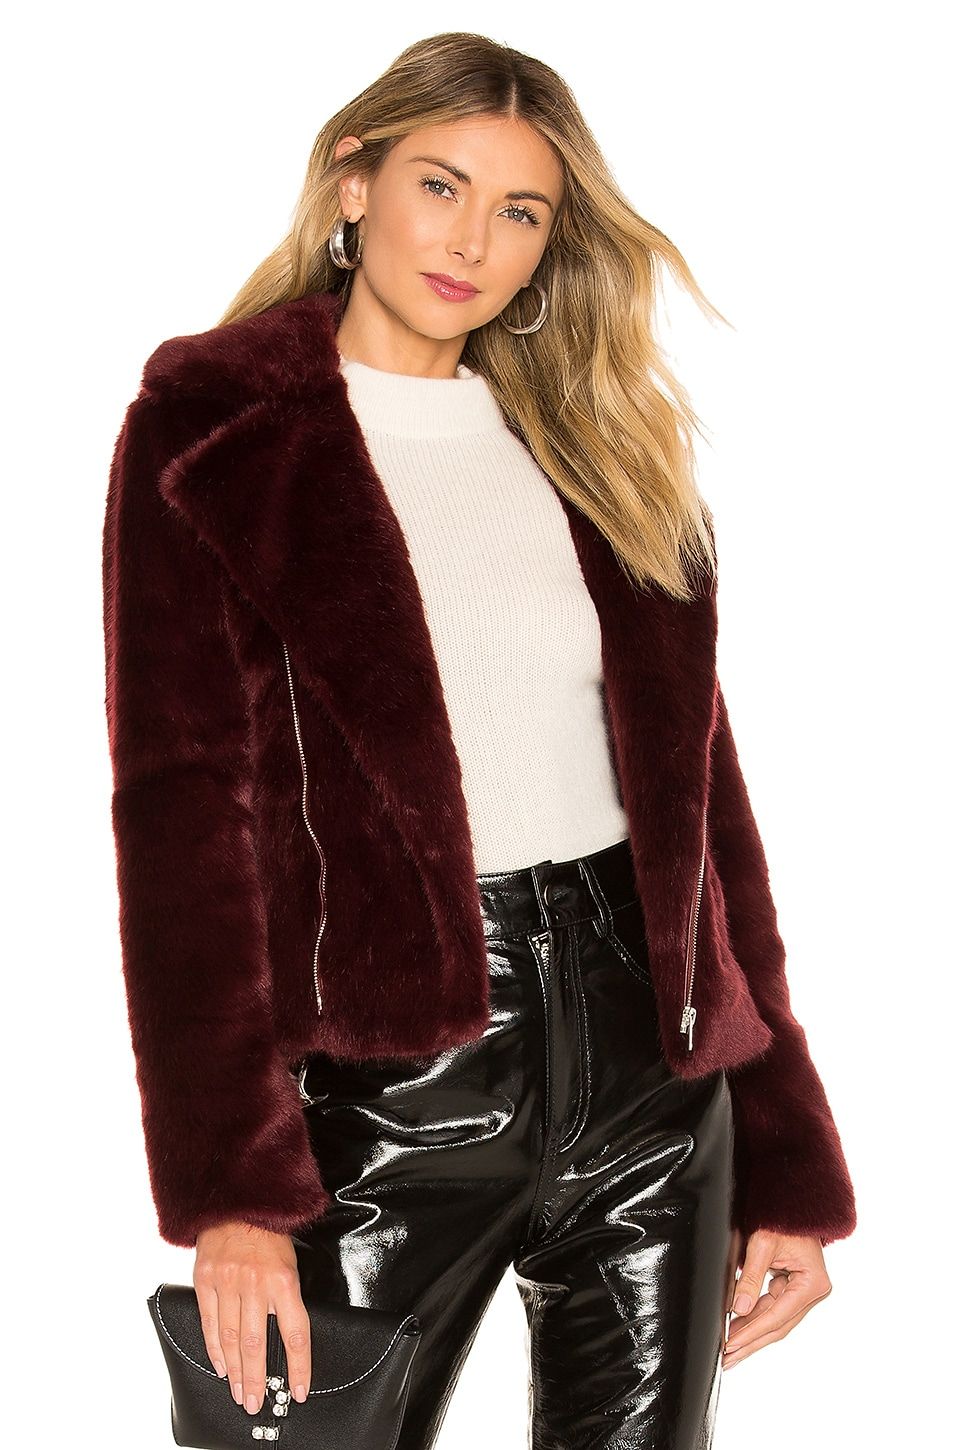 Alexis Shura Faux Fur Jacket in Burgundy